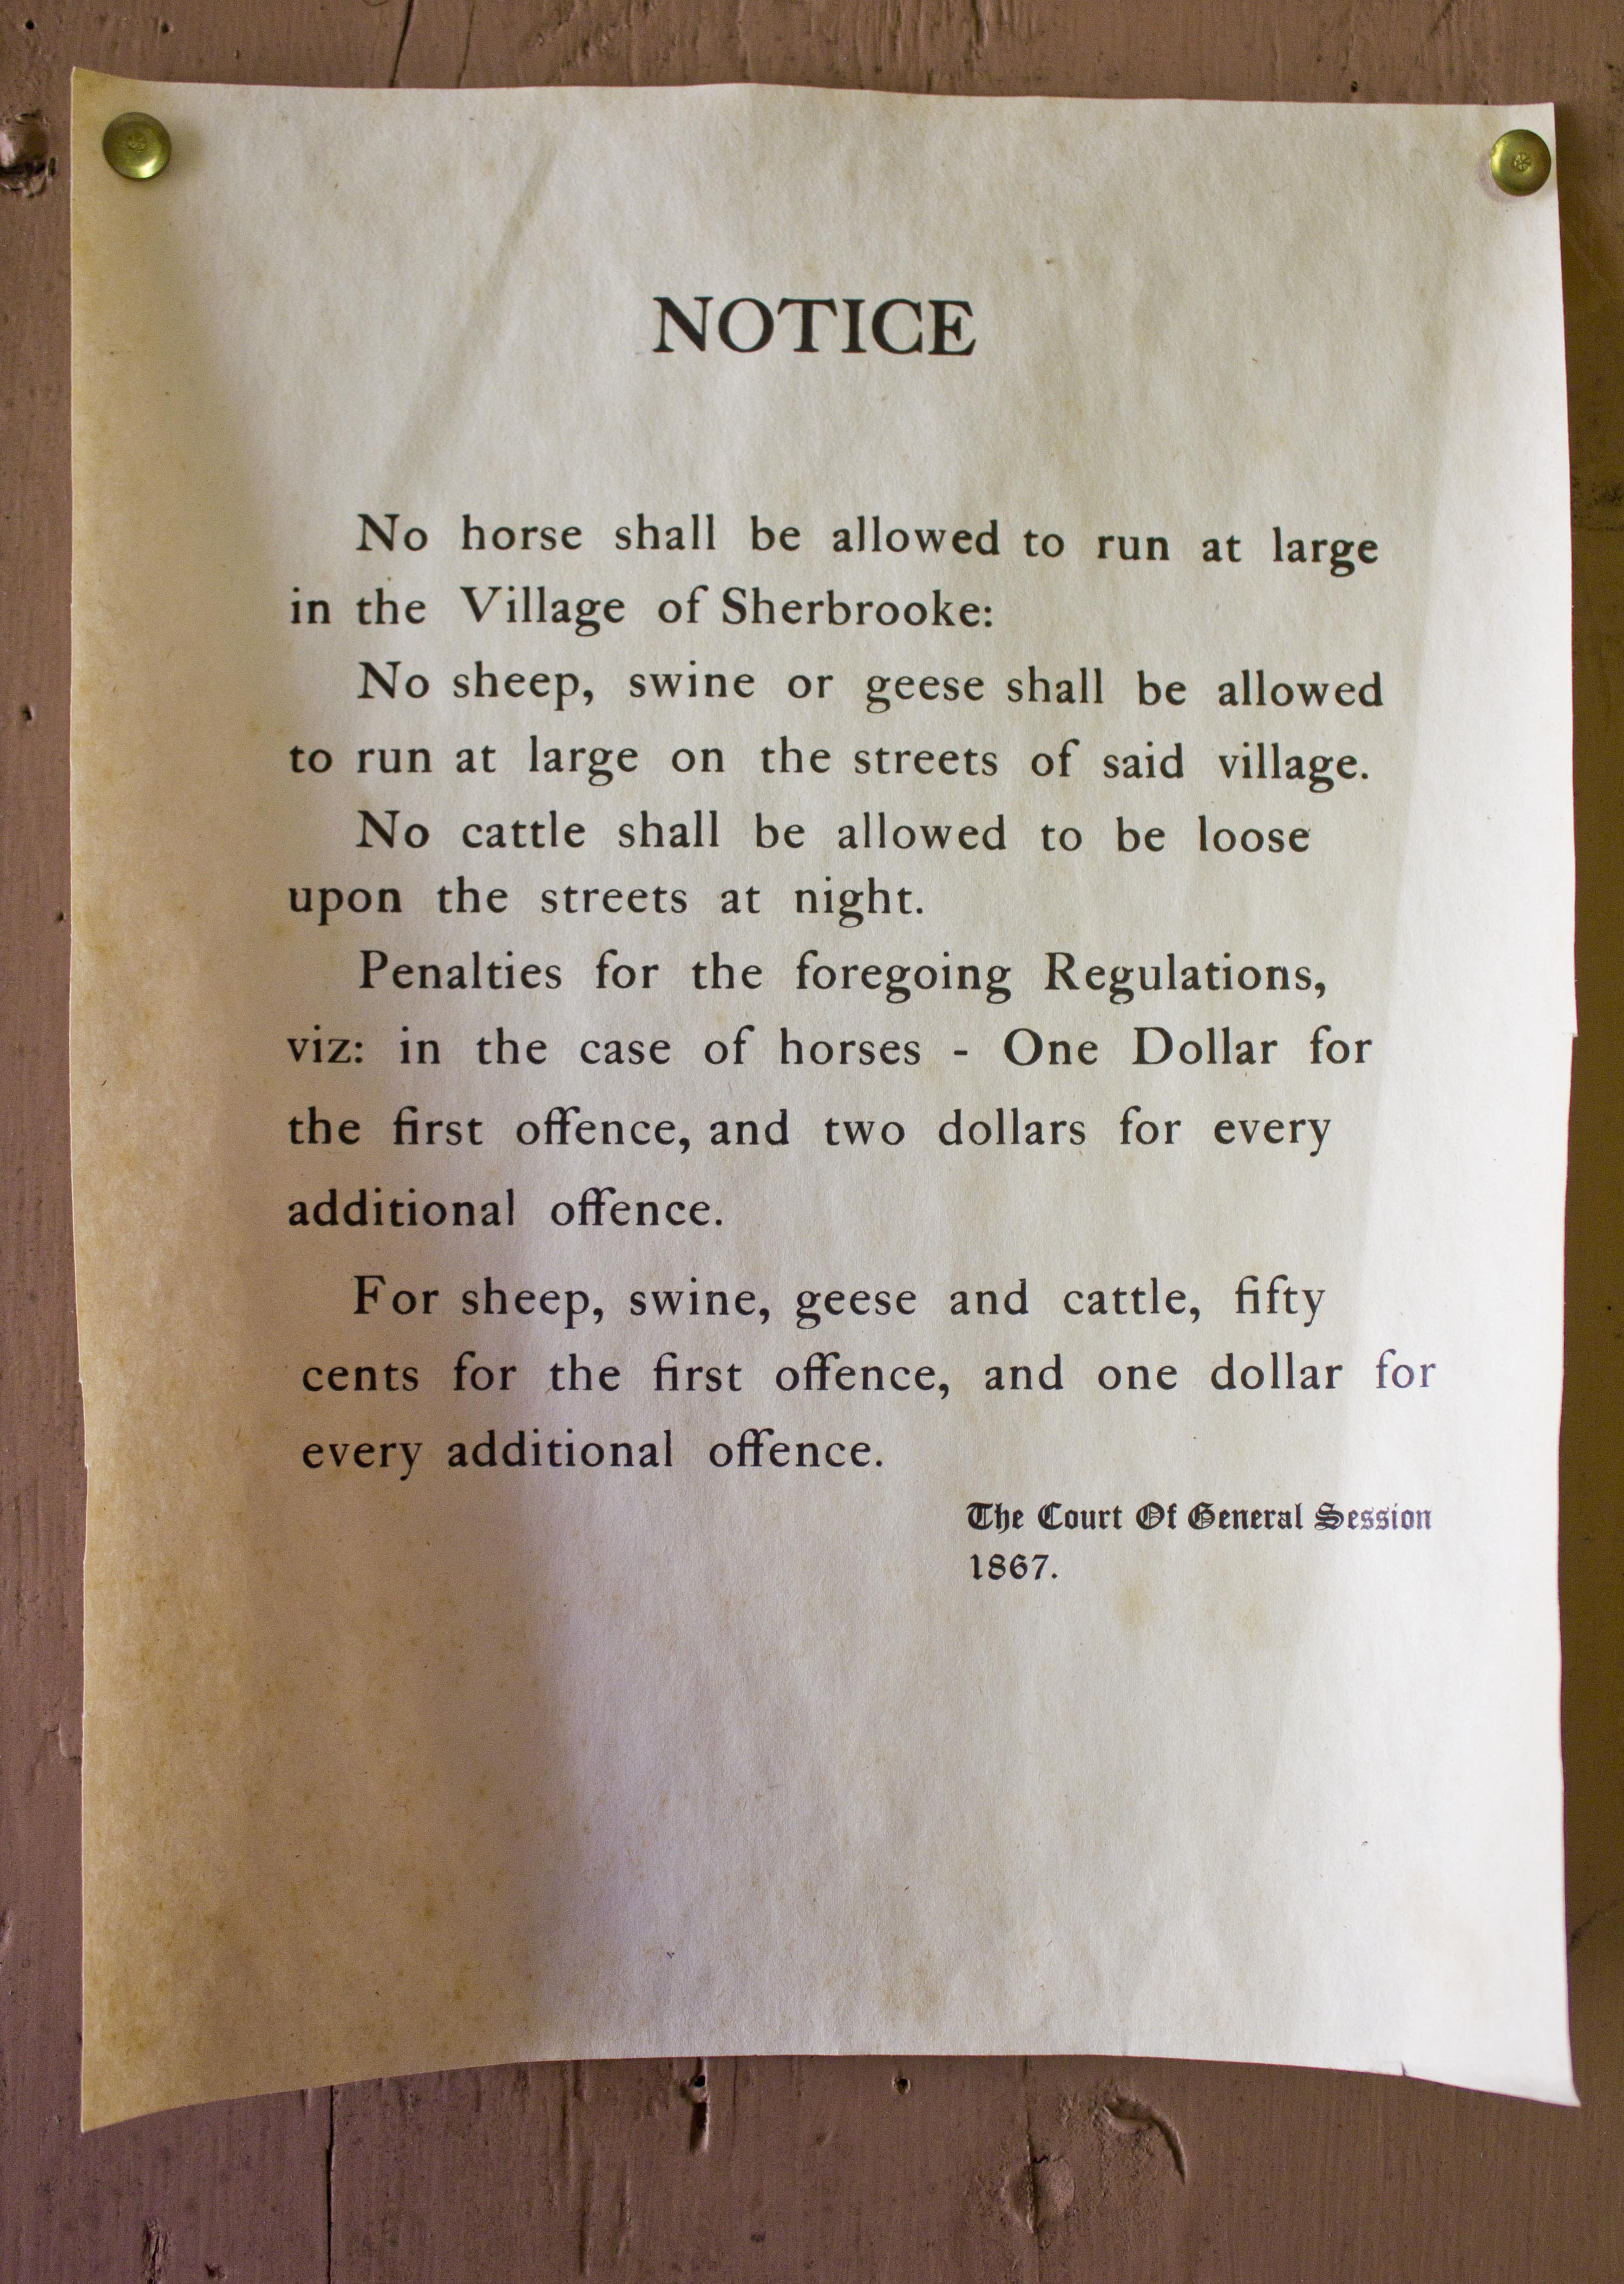 MH_Sherbrooke_PublicNotice